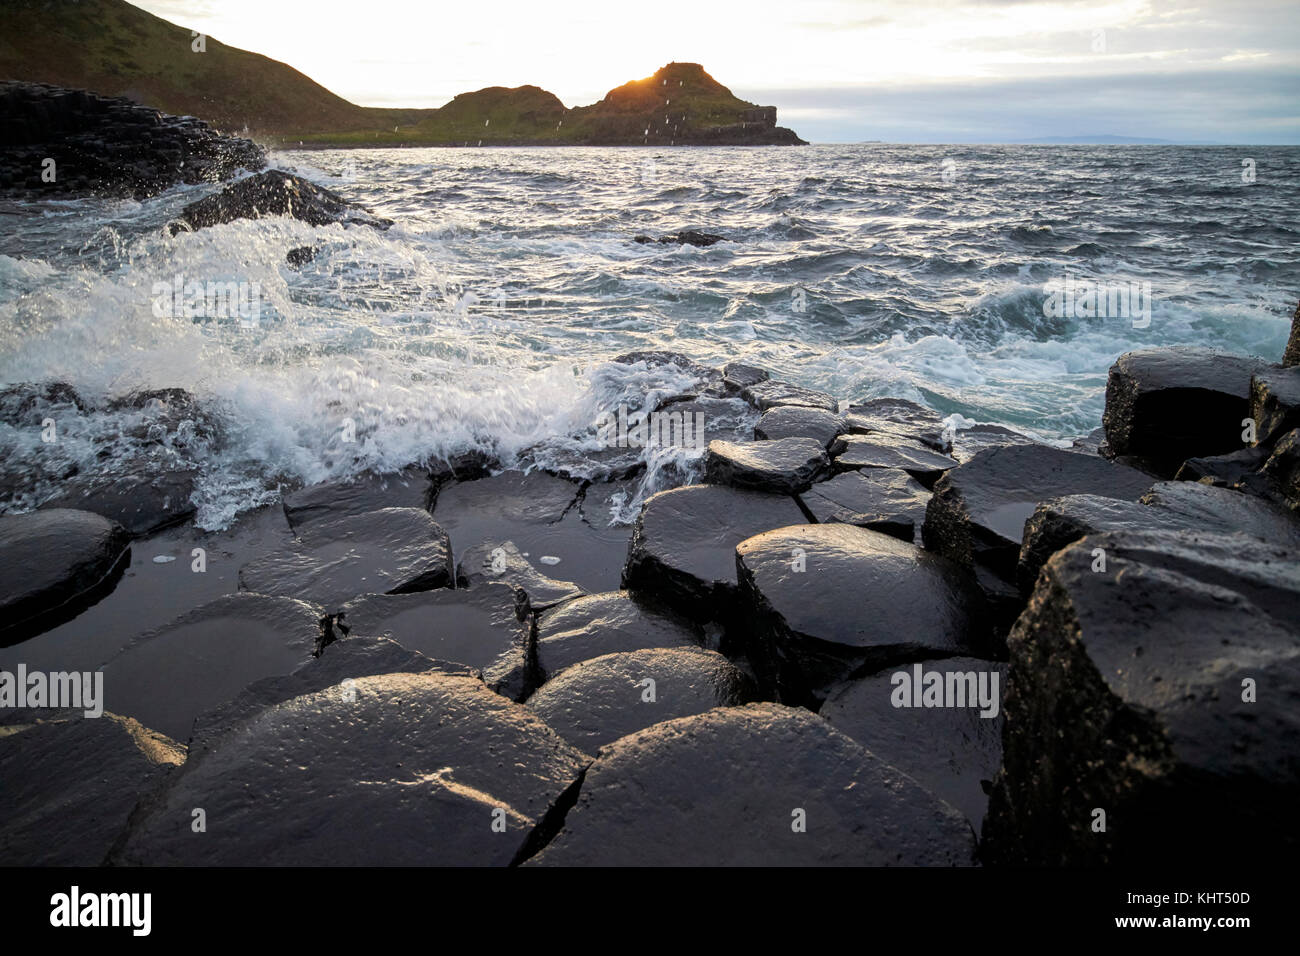 waves breaking over rocks sunset evening at the Giants Causeway county antrim northern ireland uk - Stock Image